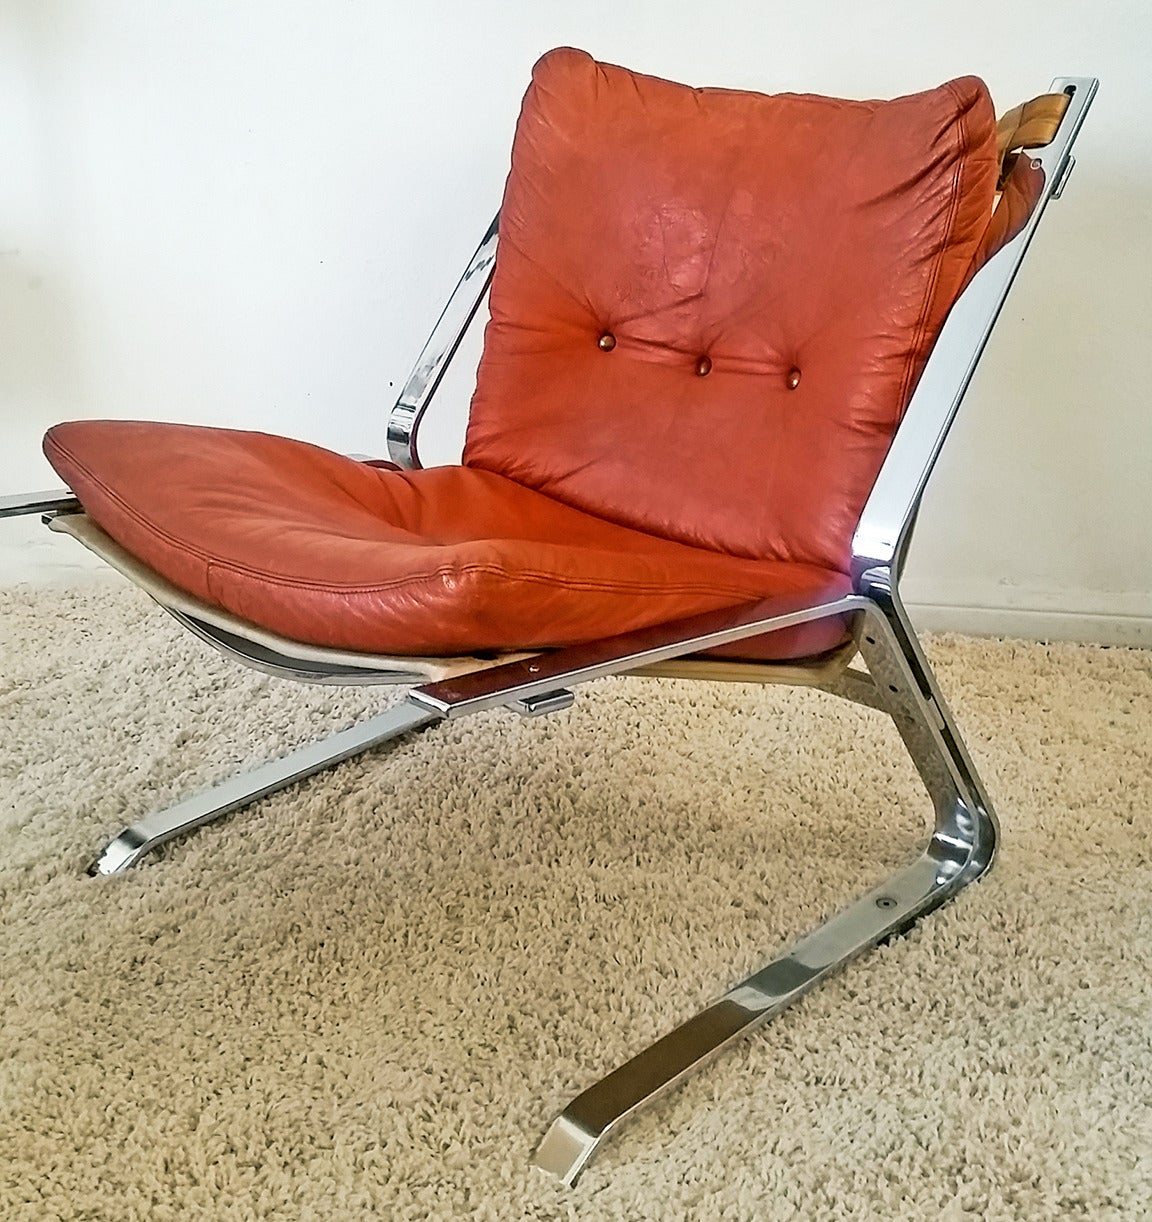 Elsa And Nordahl Solheim Quot Pirate Quot Chrome Lounge Chair At